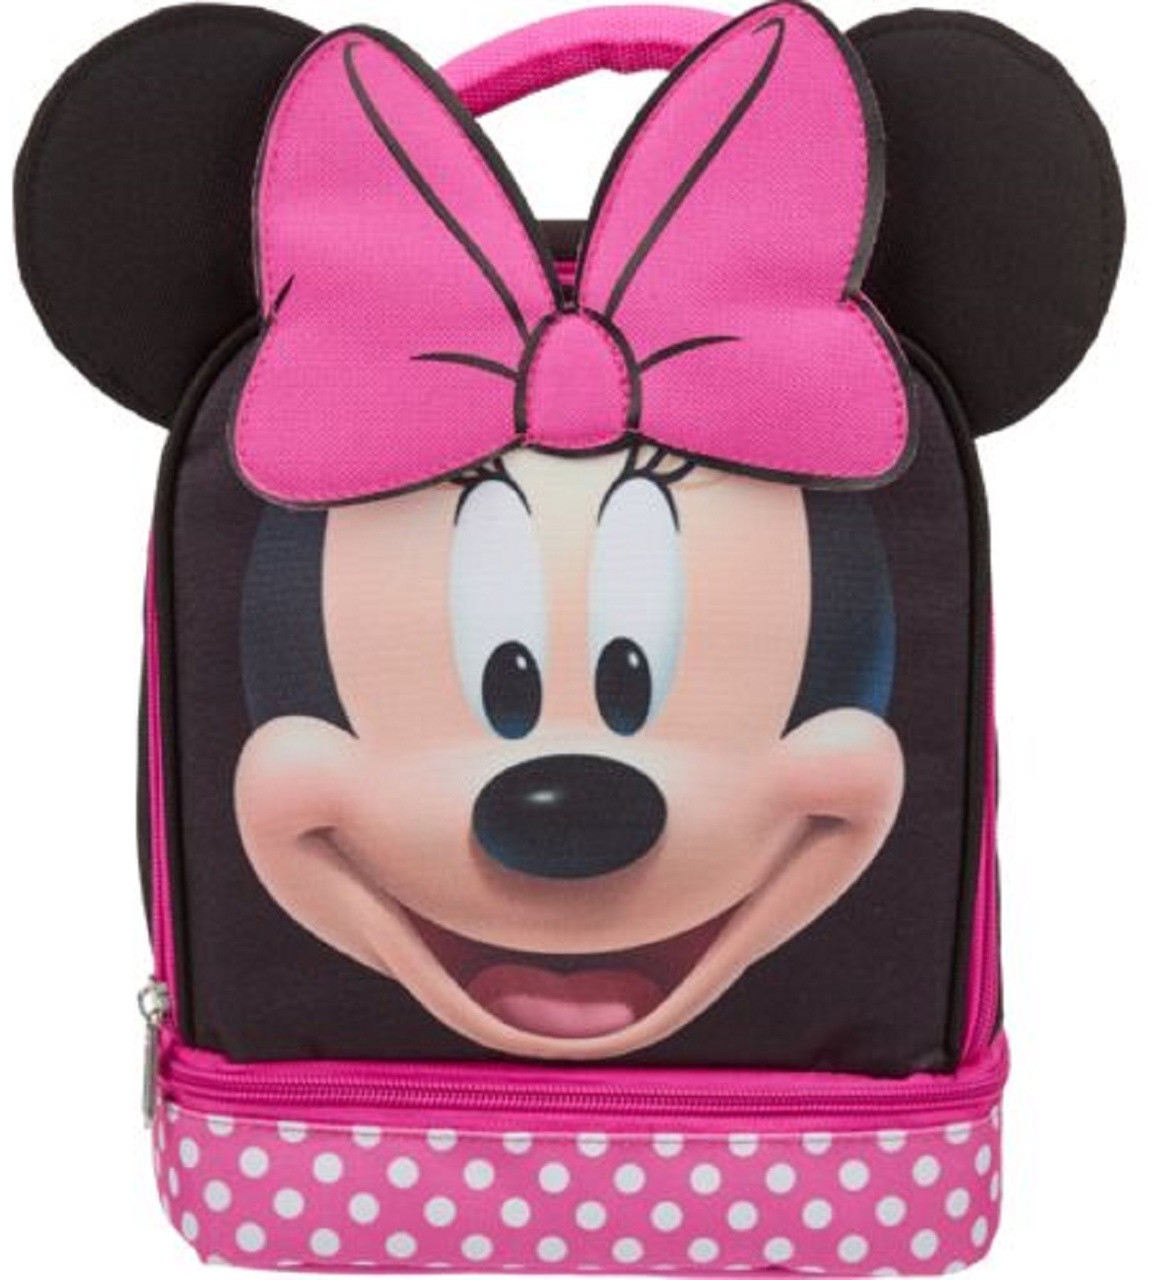 Lunch Box - Minnie Mouse - Face